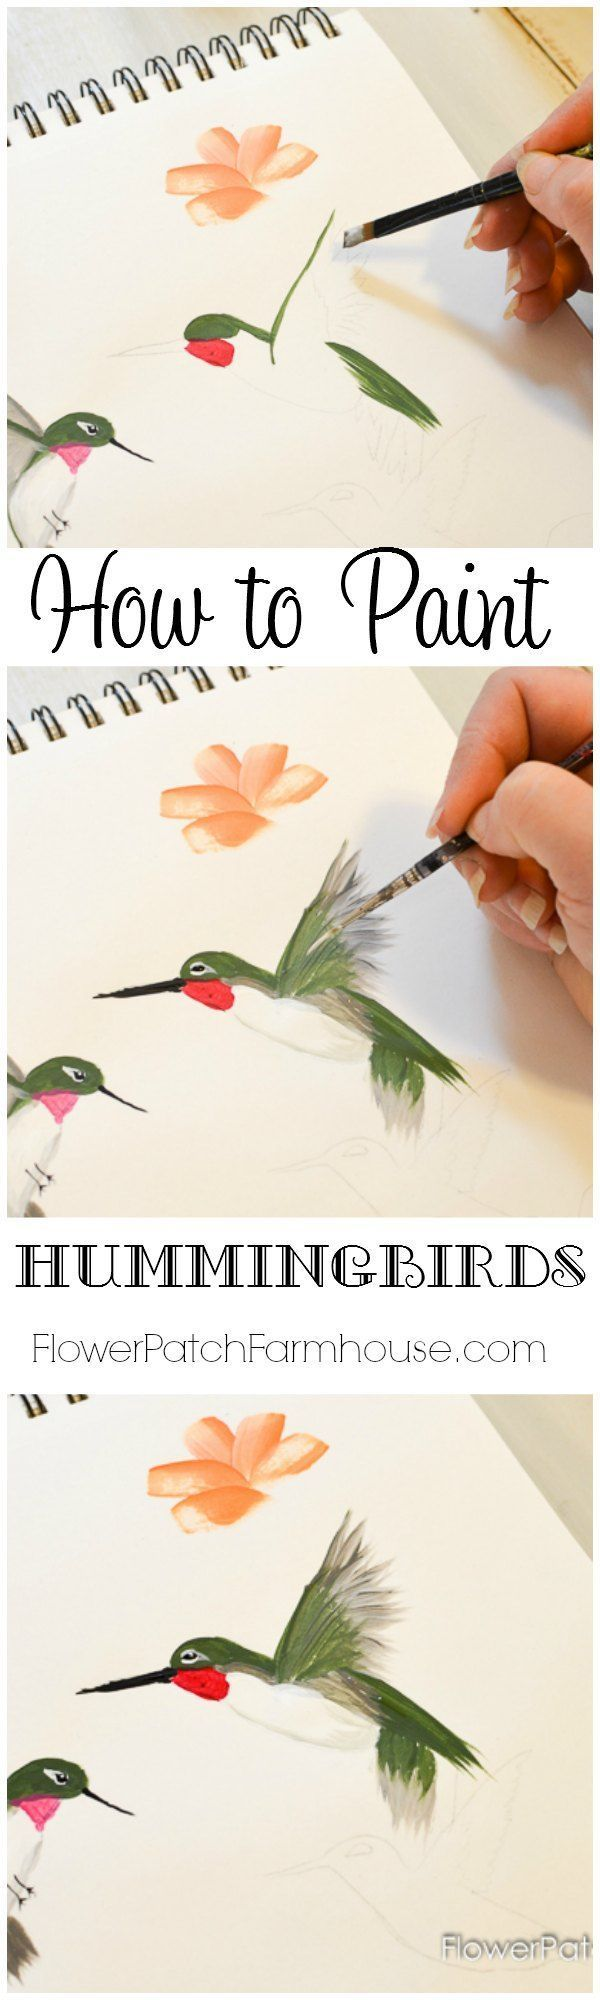 Come learn how to Paint a Hummingbird